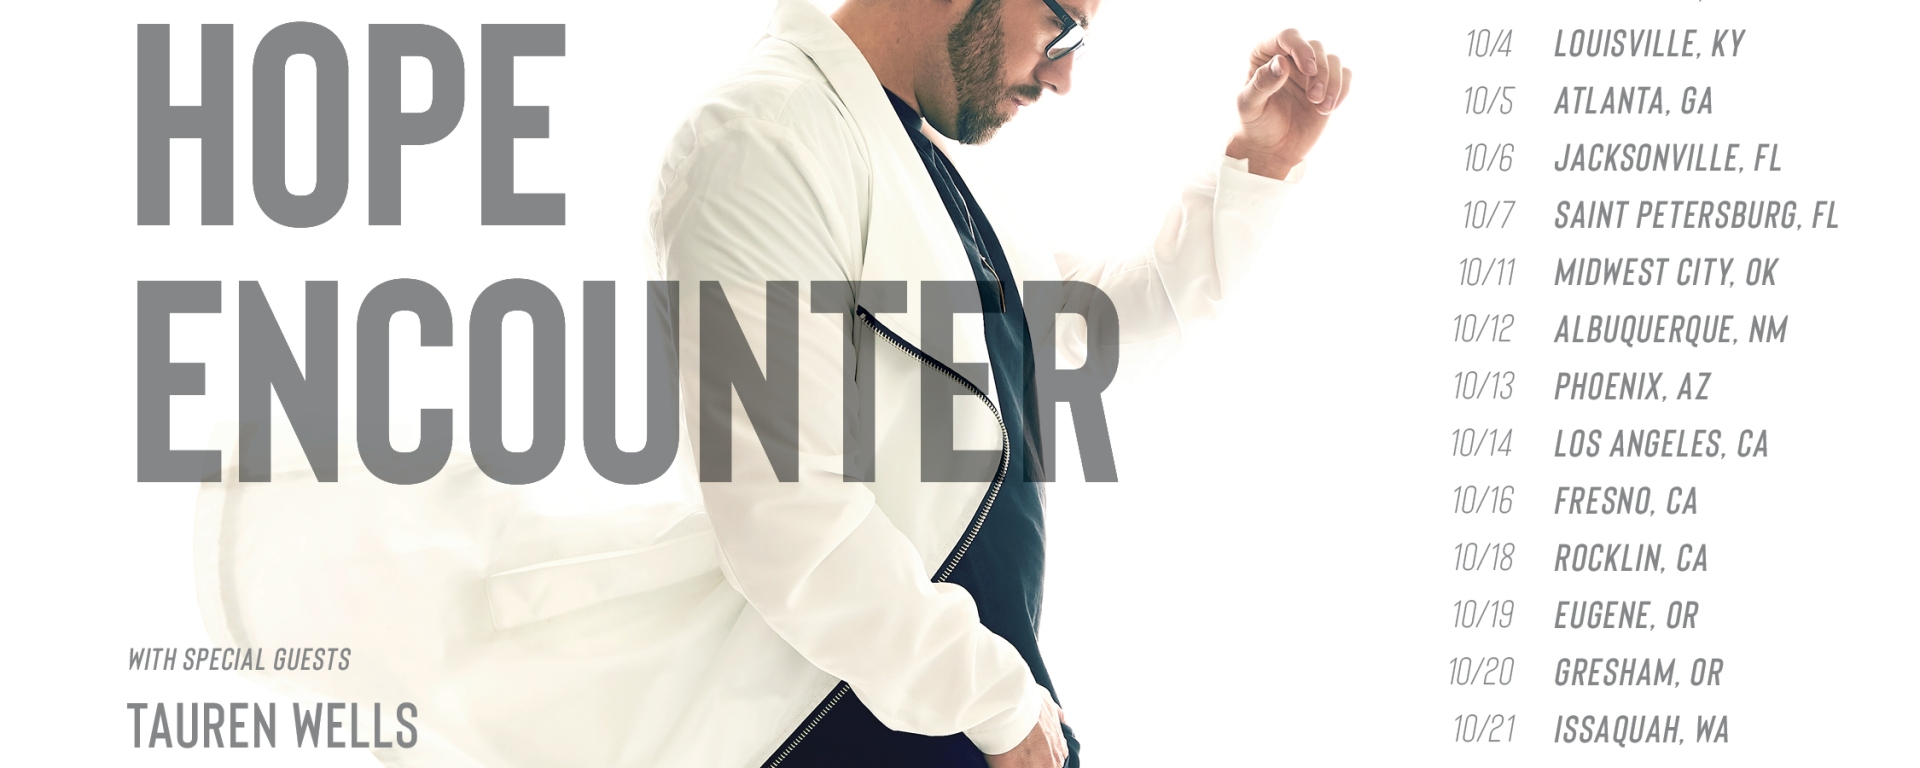 """Danny Gokey\'s """"The Hope Encounter"""" Tour Will Feature Local Community ..."""